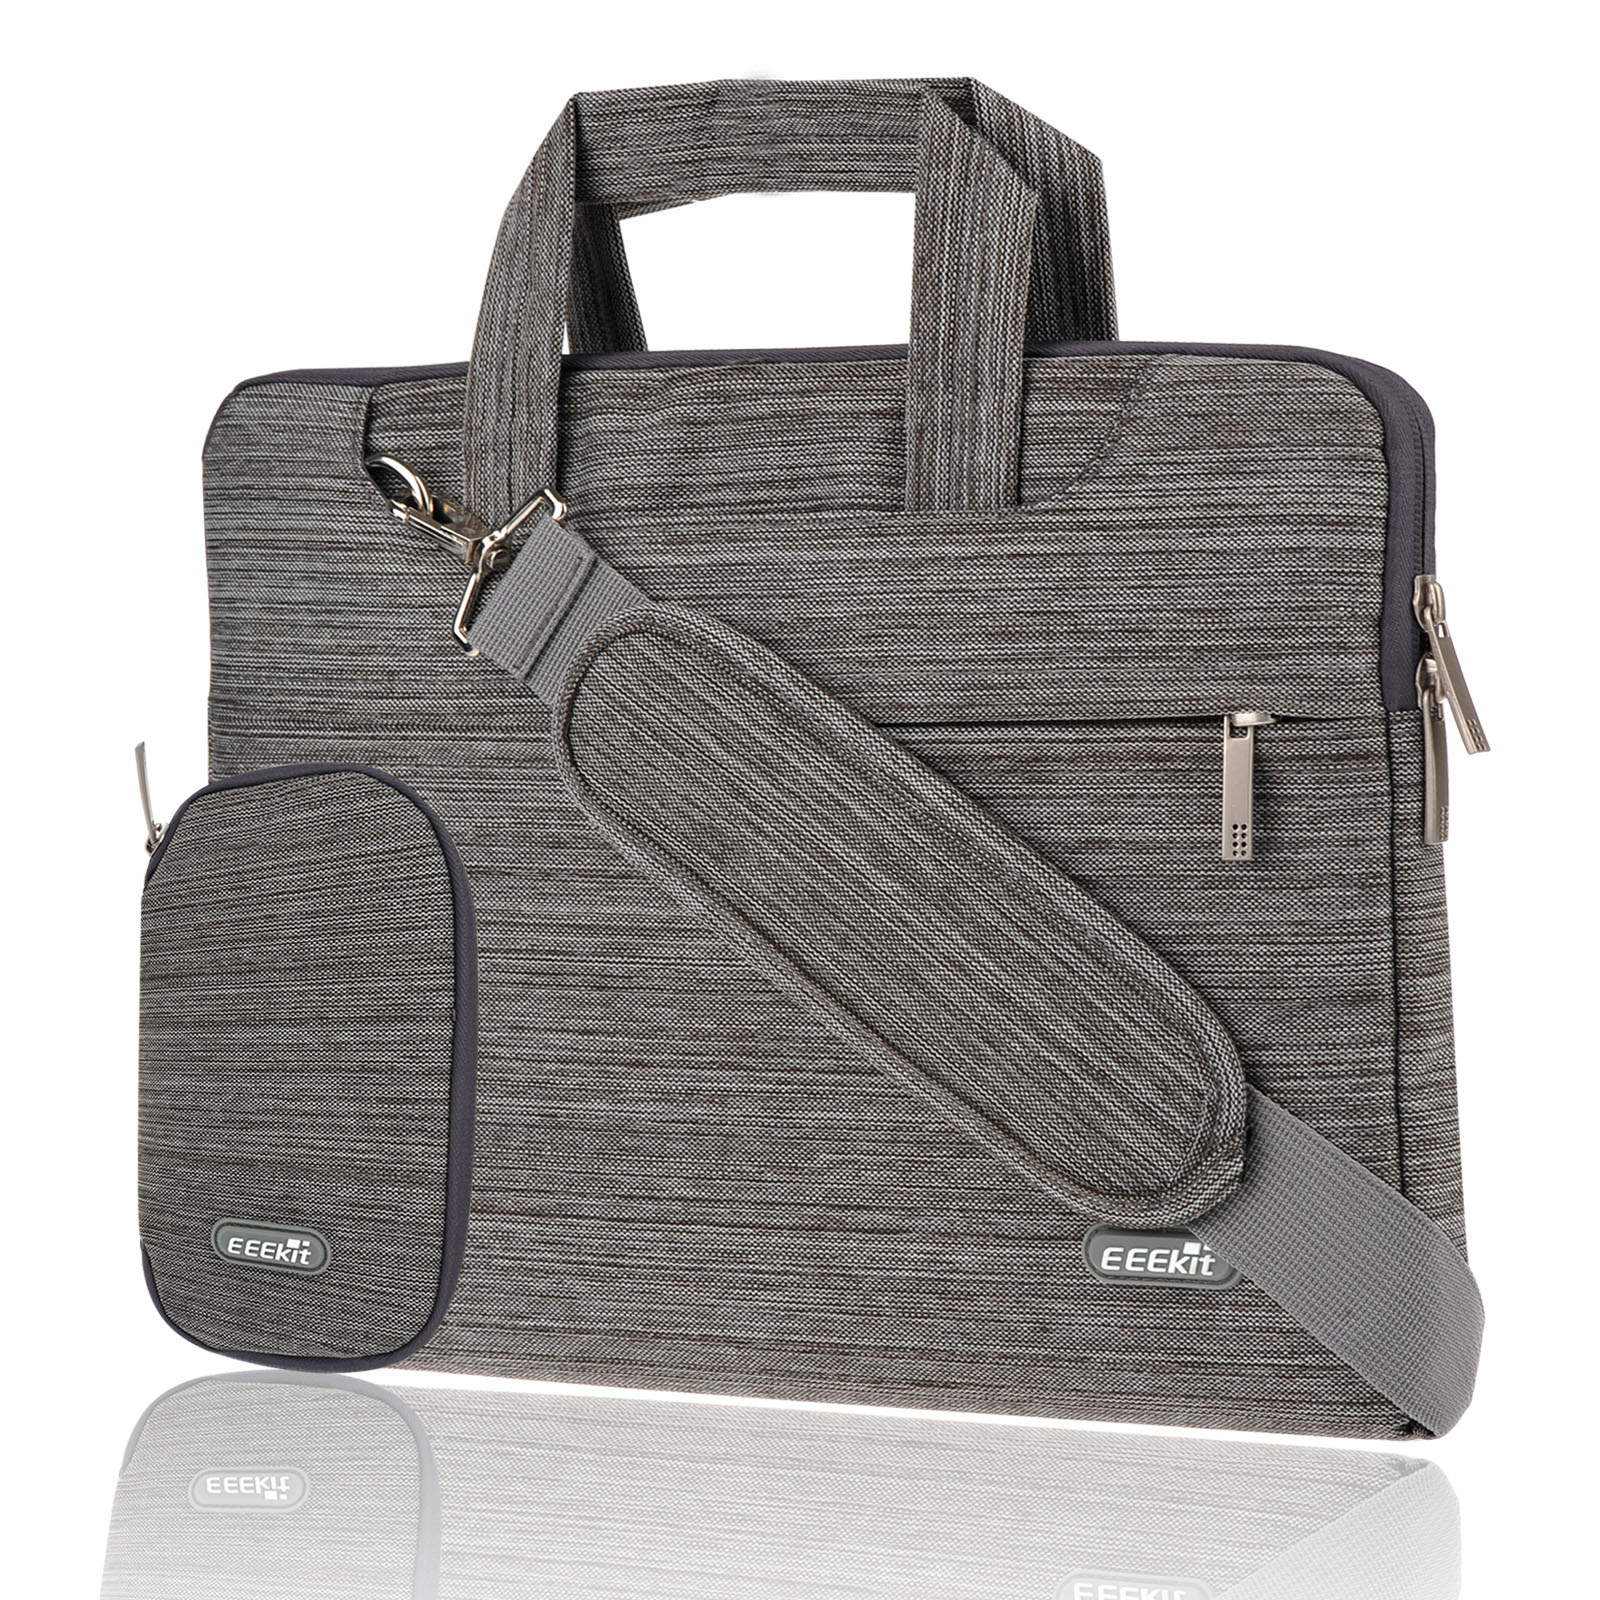 EEEKit Univesal 11.6 inch Laptop Shoulder Handle Sleeve Bag Briefcase Carrying Case for MacBook HP Acer ASUS Lenove Dell